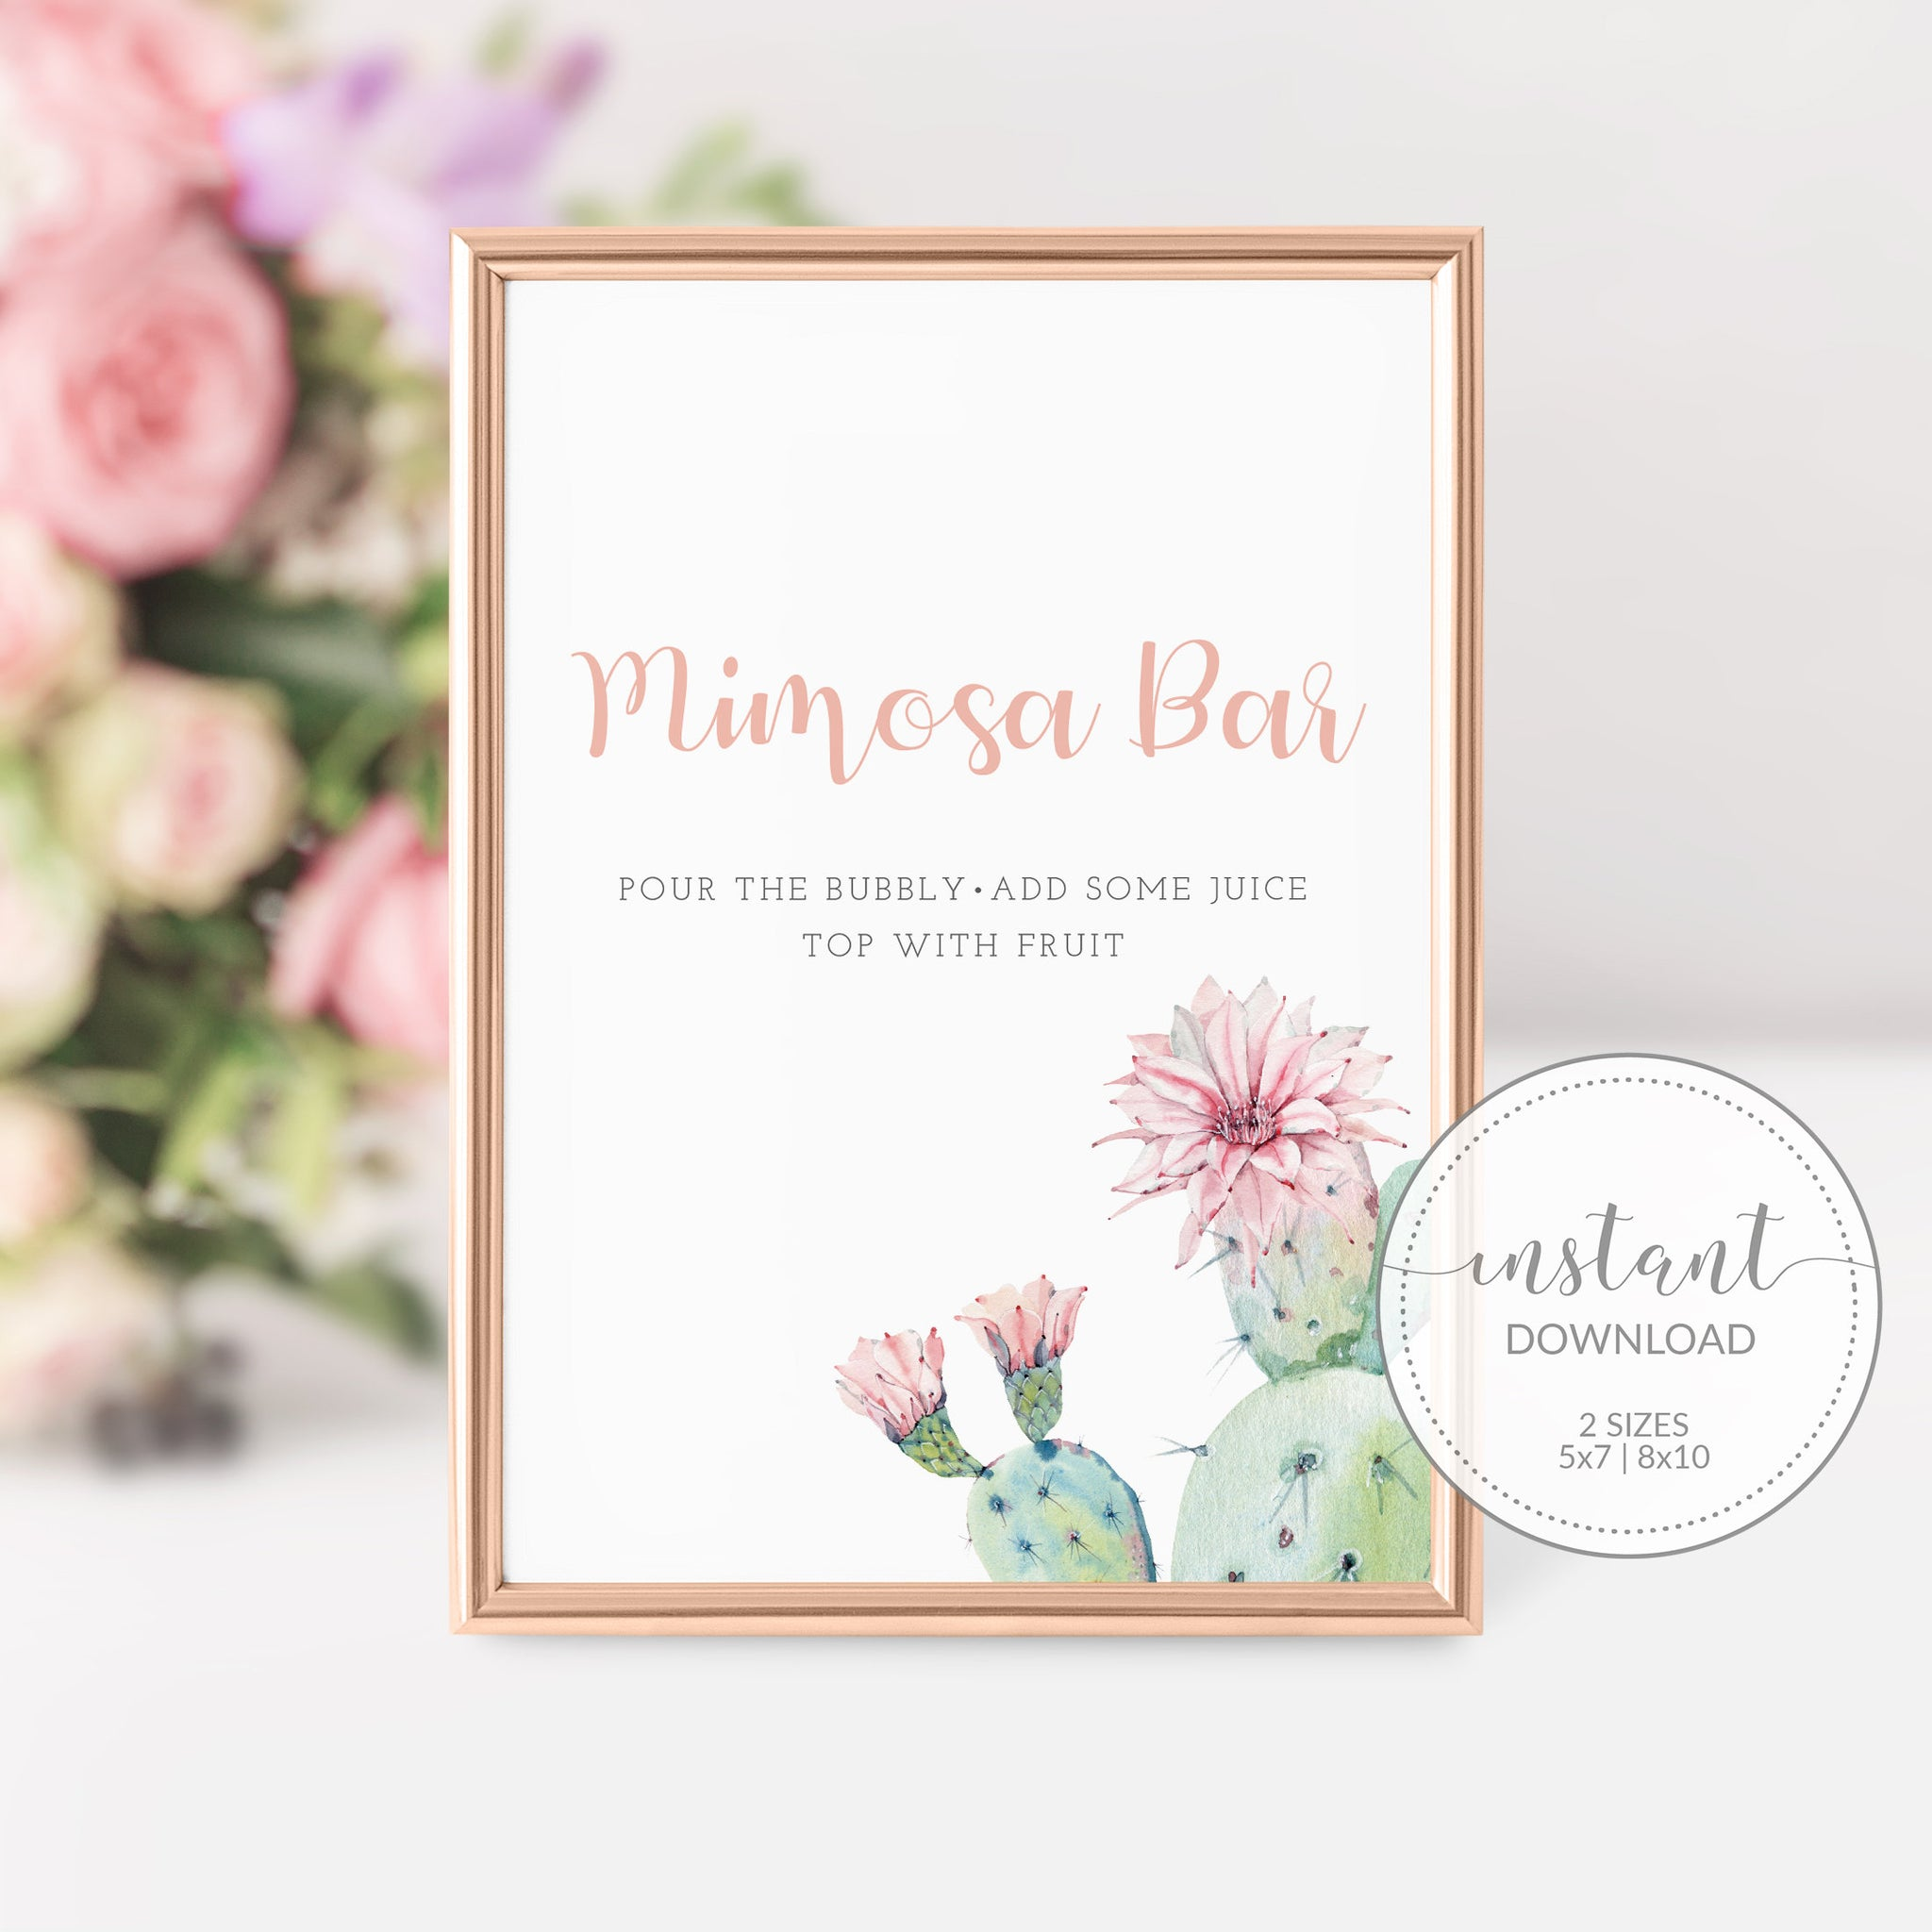 Succulent Bridal Shower Mimosa Bar Sign Printable, Cactus Bridal Shower Bubbly Bar Sign, Succulent Decorations, DIGITAL DOWNLOAD - CS100 - @PlumPolkaDot